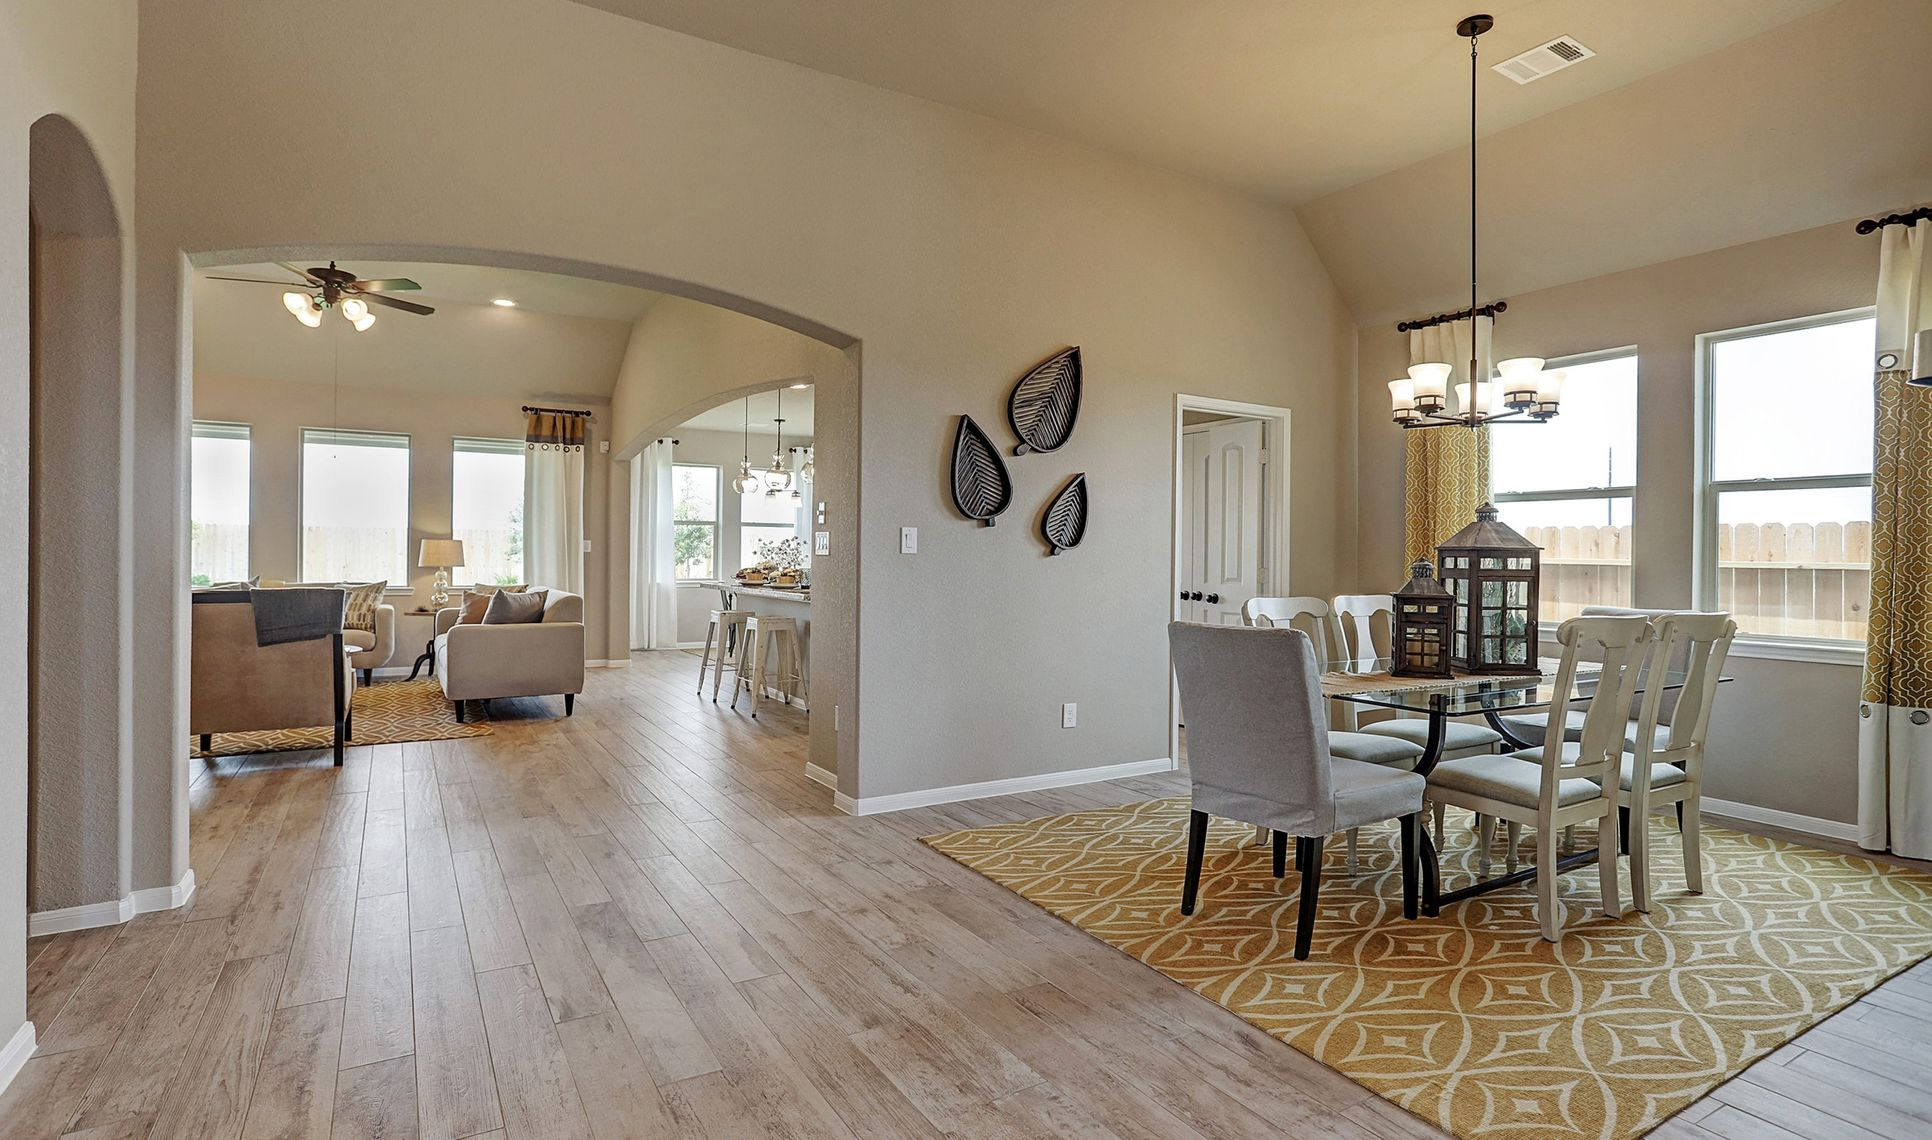 Interior:Dining room with access to kitchen